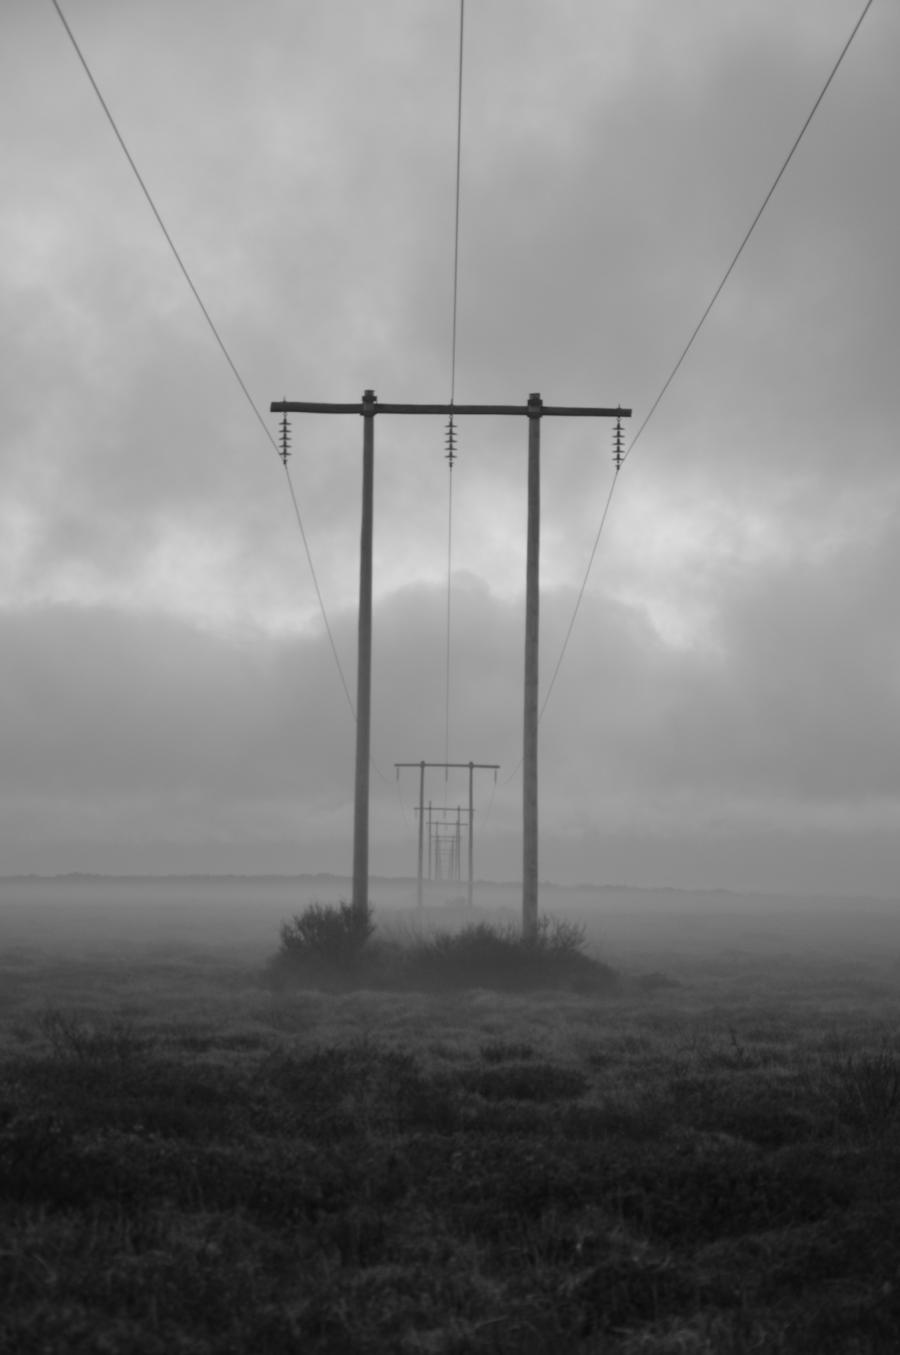 Demon powerlines by spartout